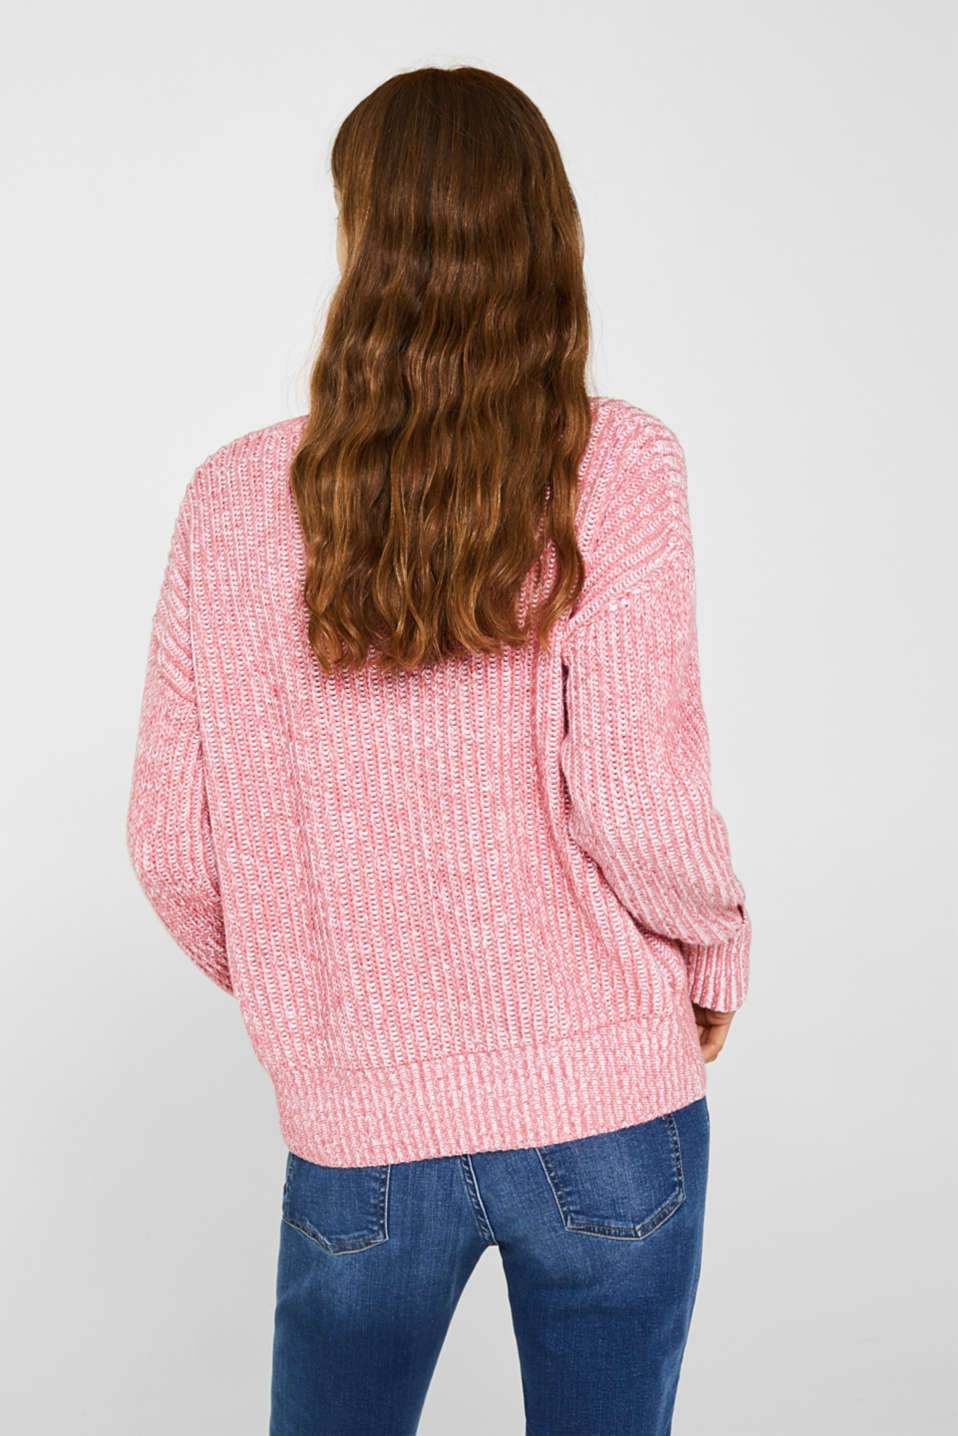 Sweaters, BLUSH 3, detail image number 3